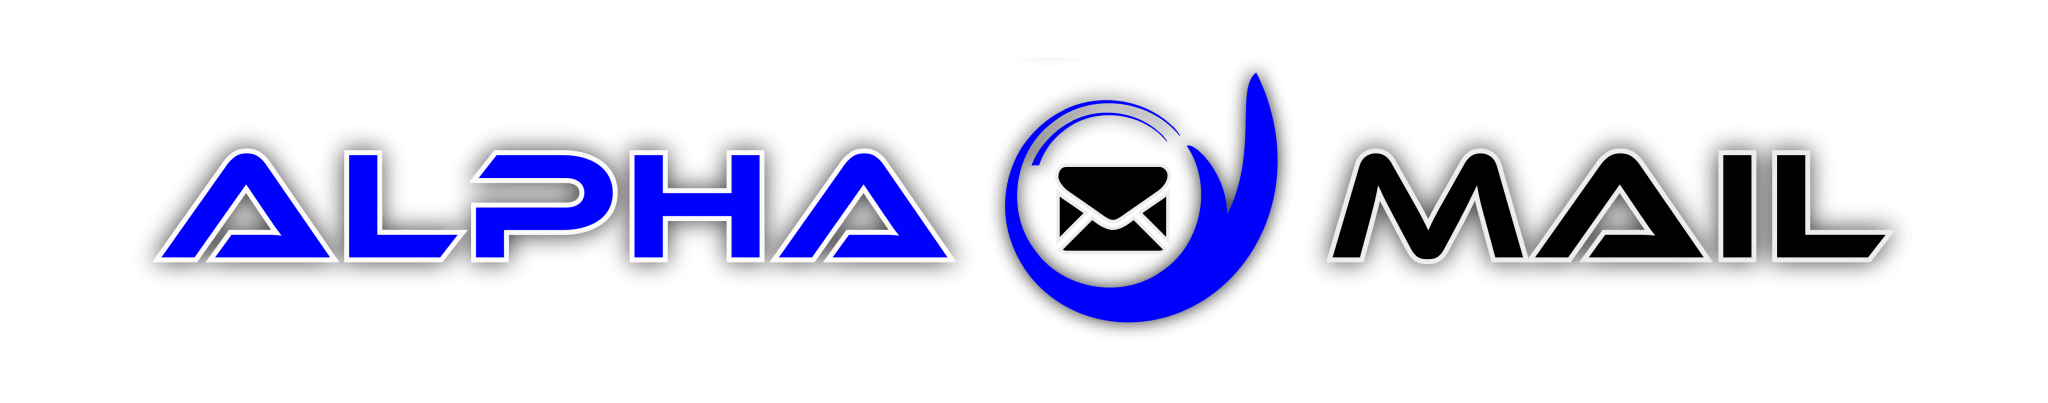 alpha mail email service